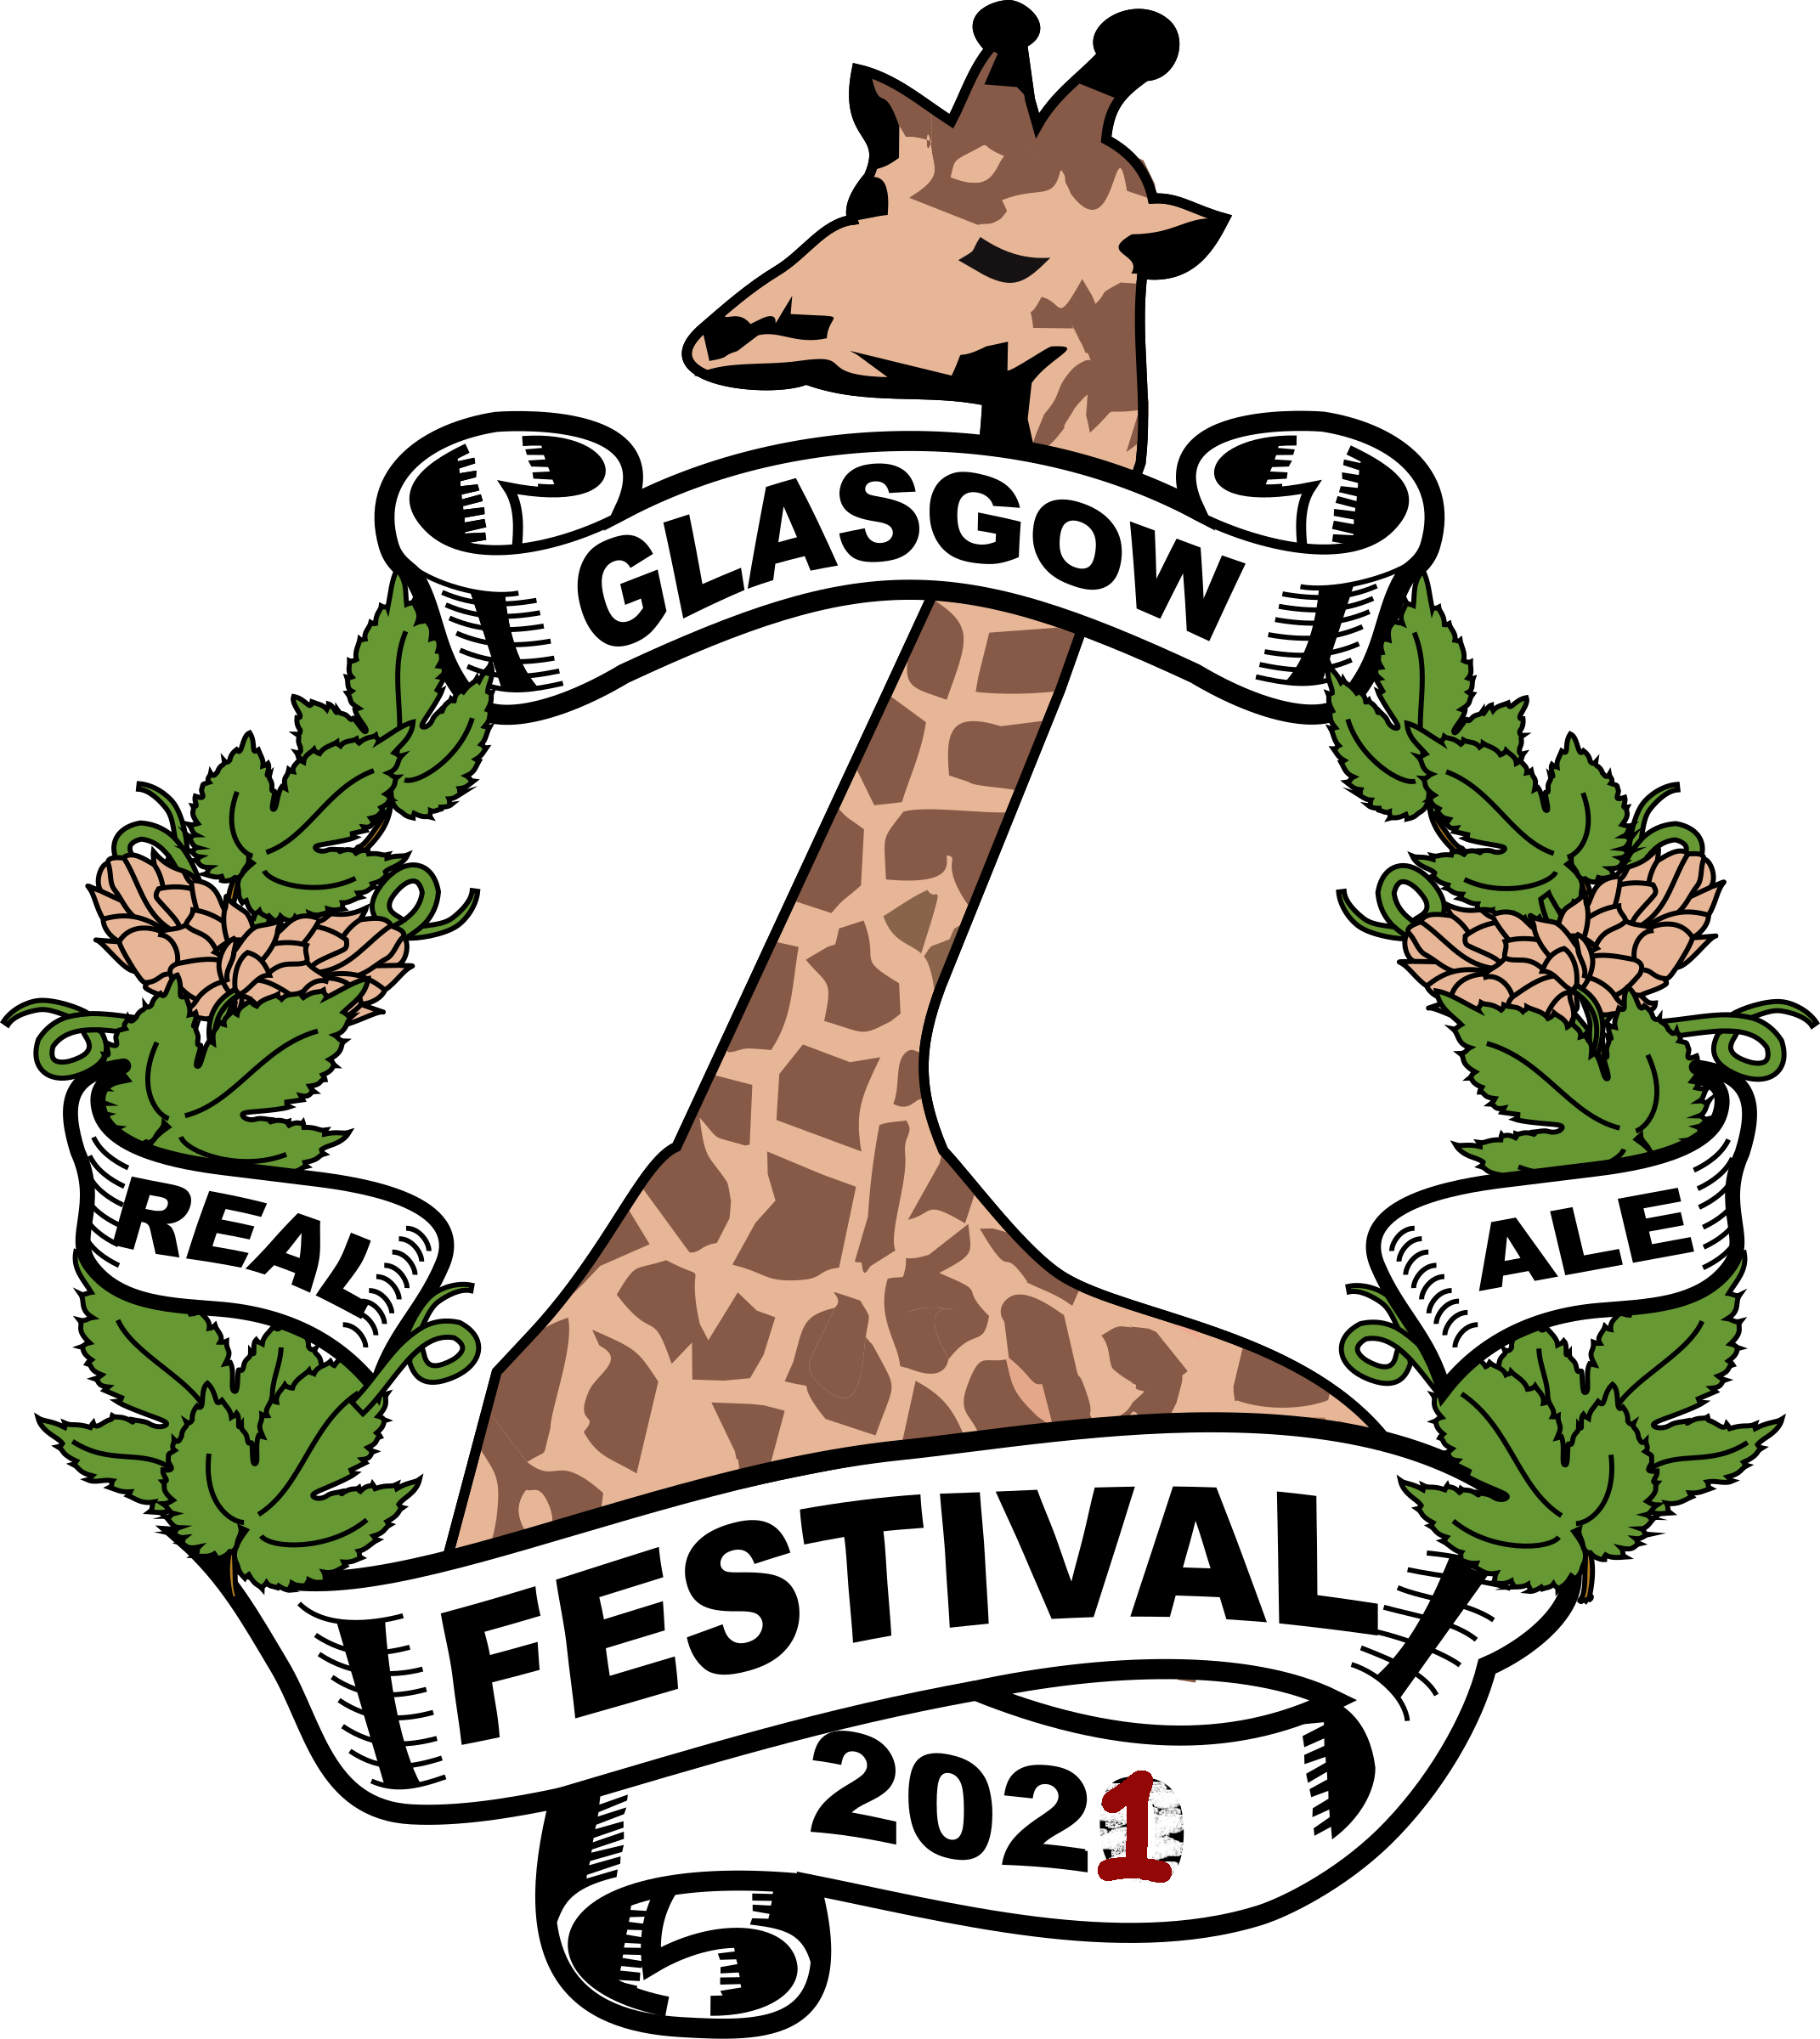 Glasgow Real Ale Festival